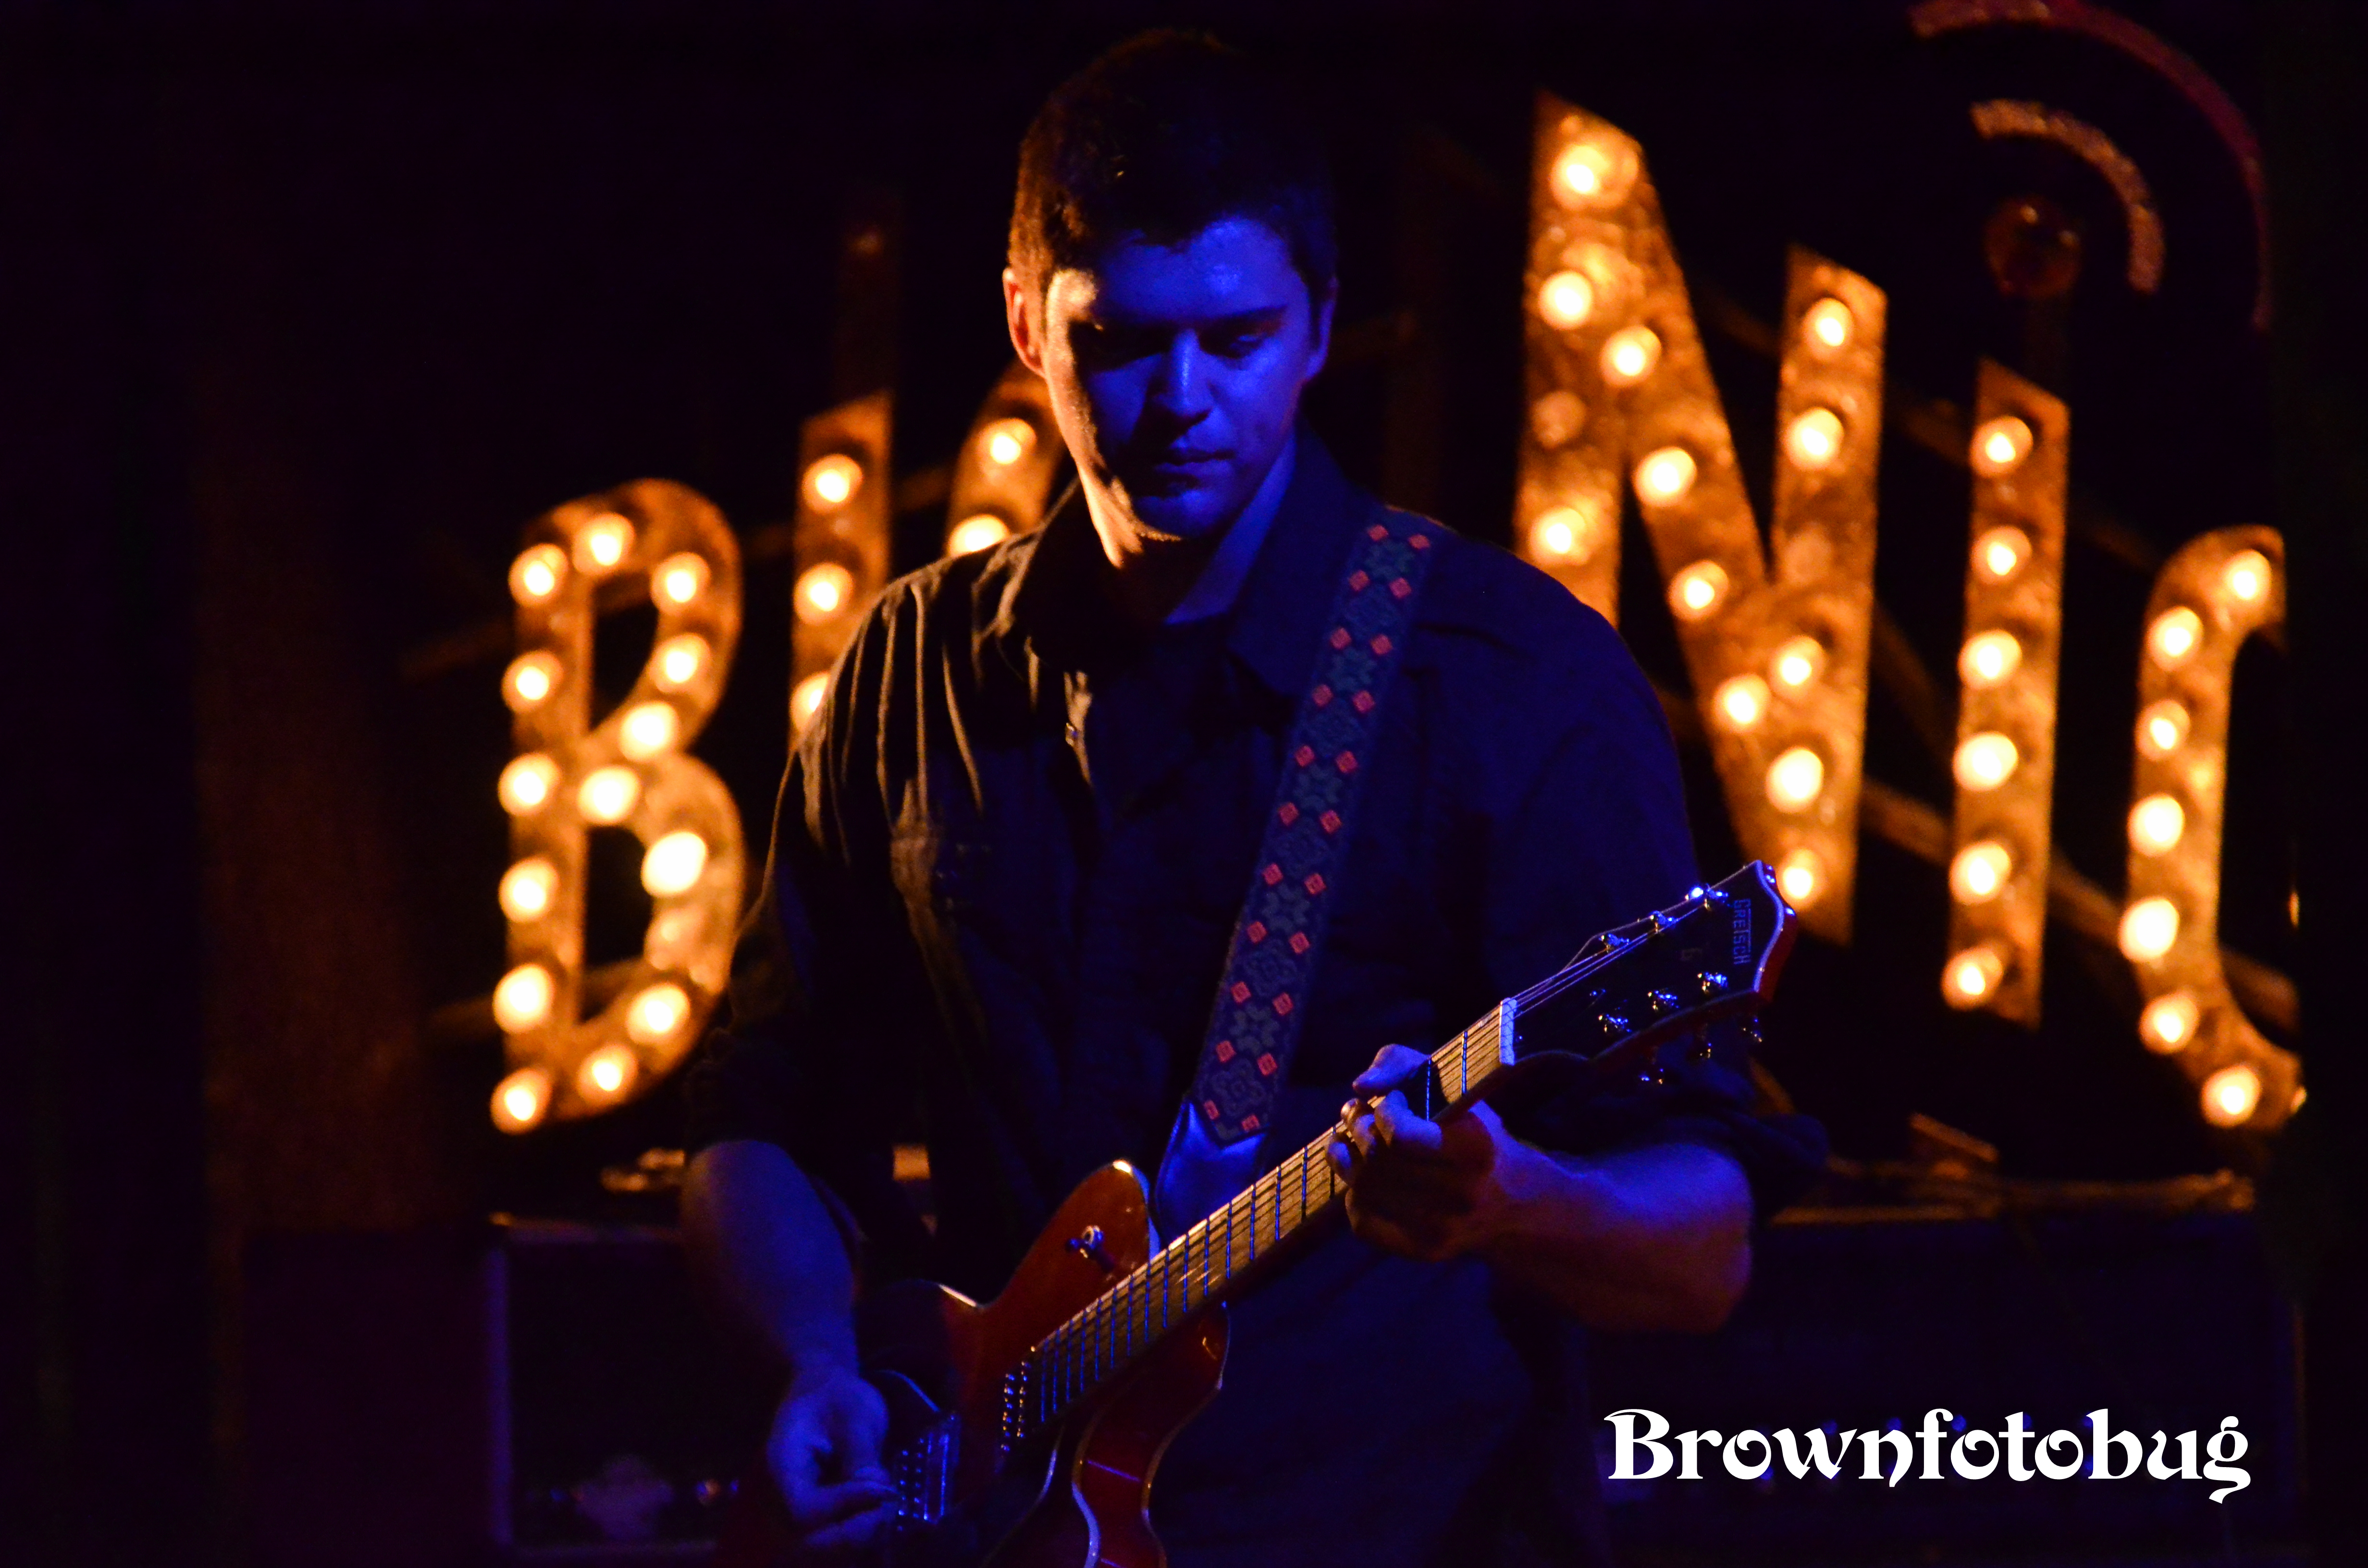 Born of Ghosts live at The Rec Room (Photo by Arlene Brown)